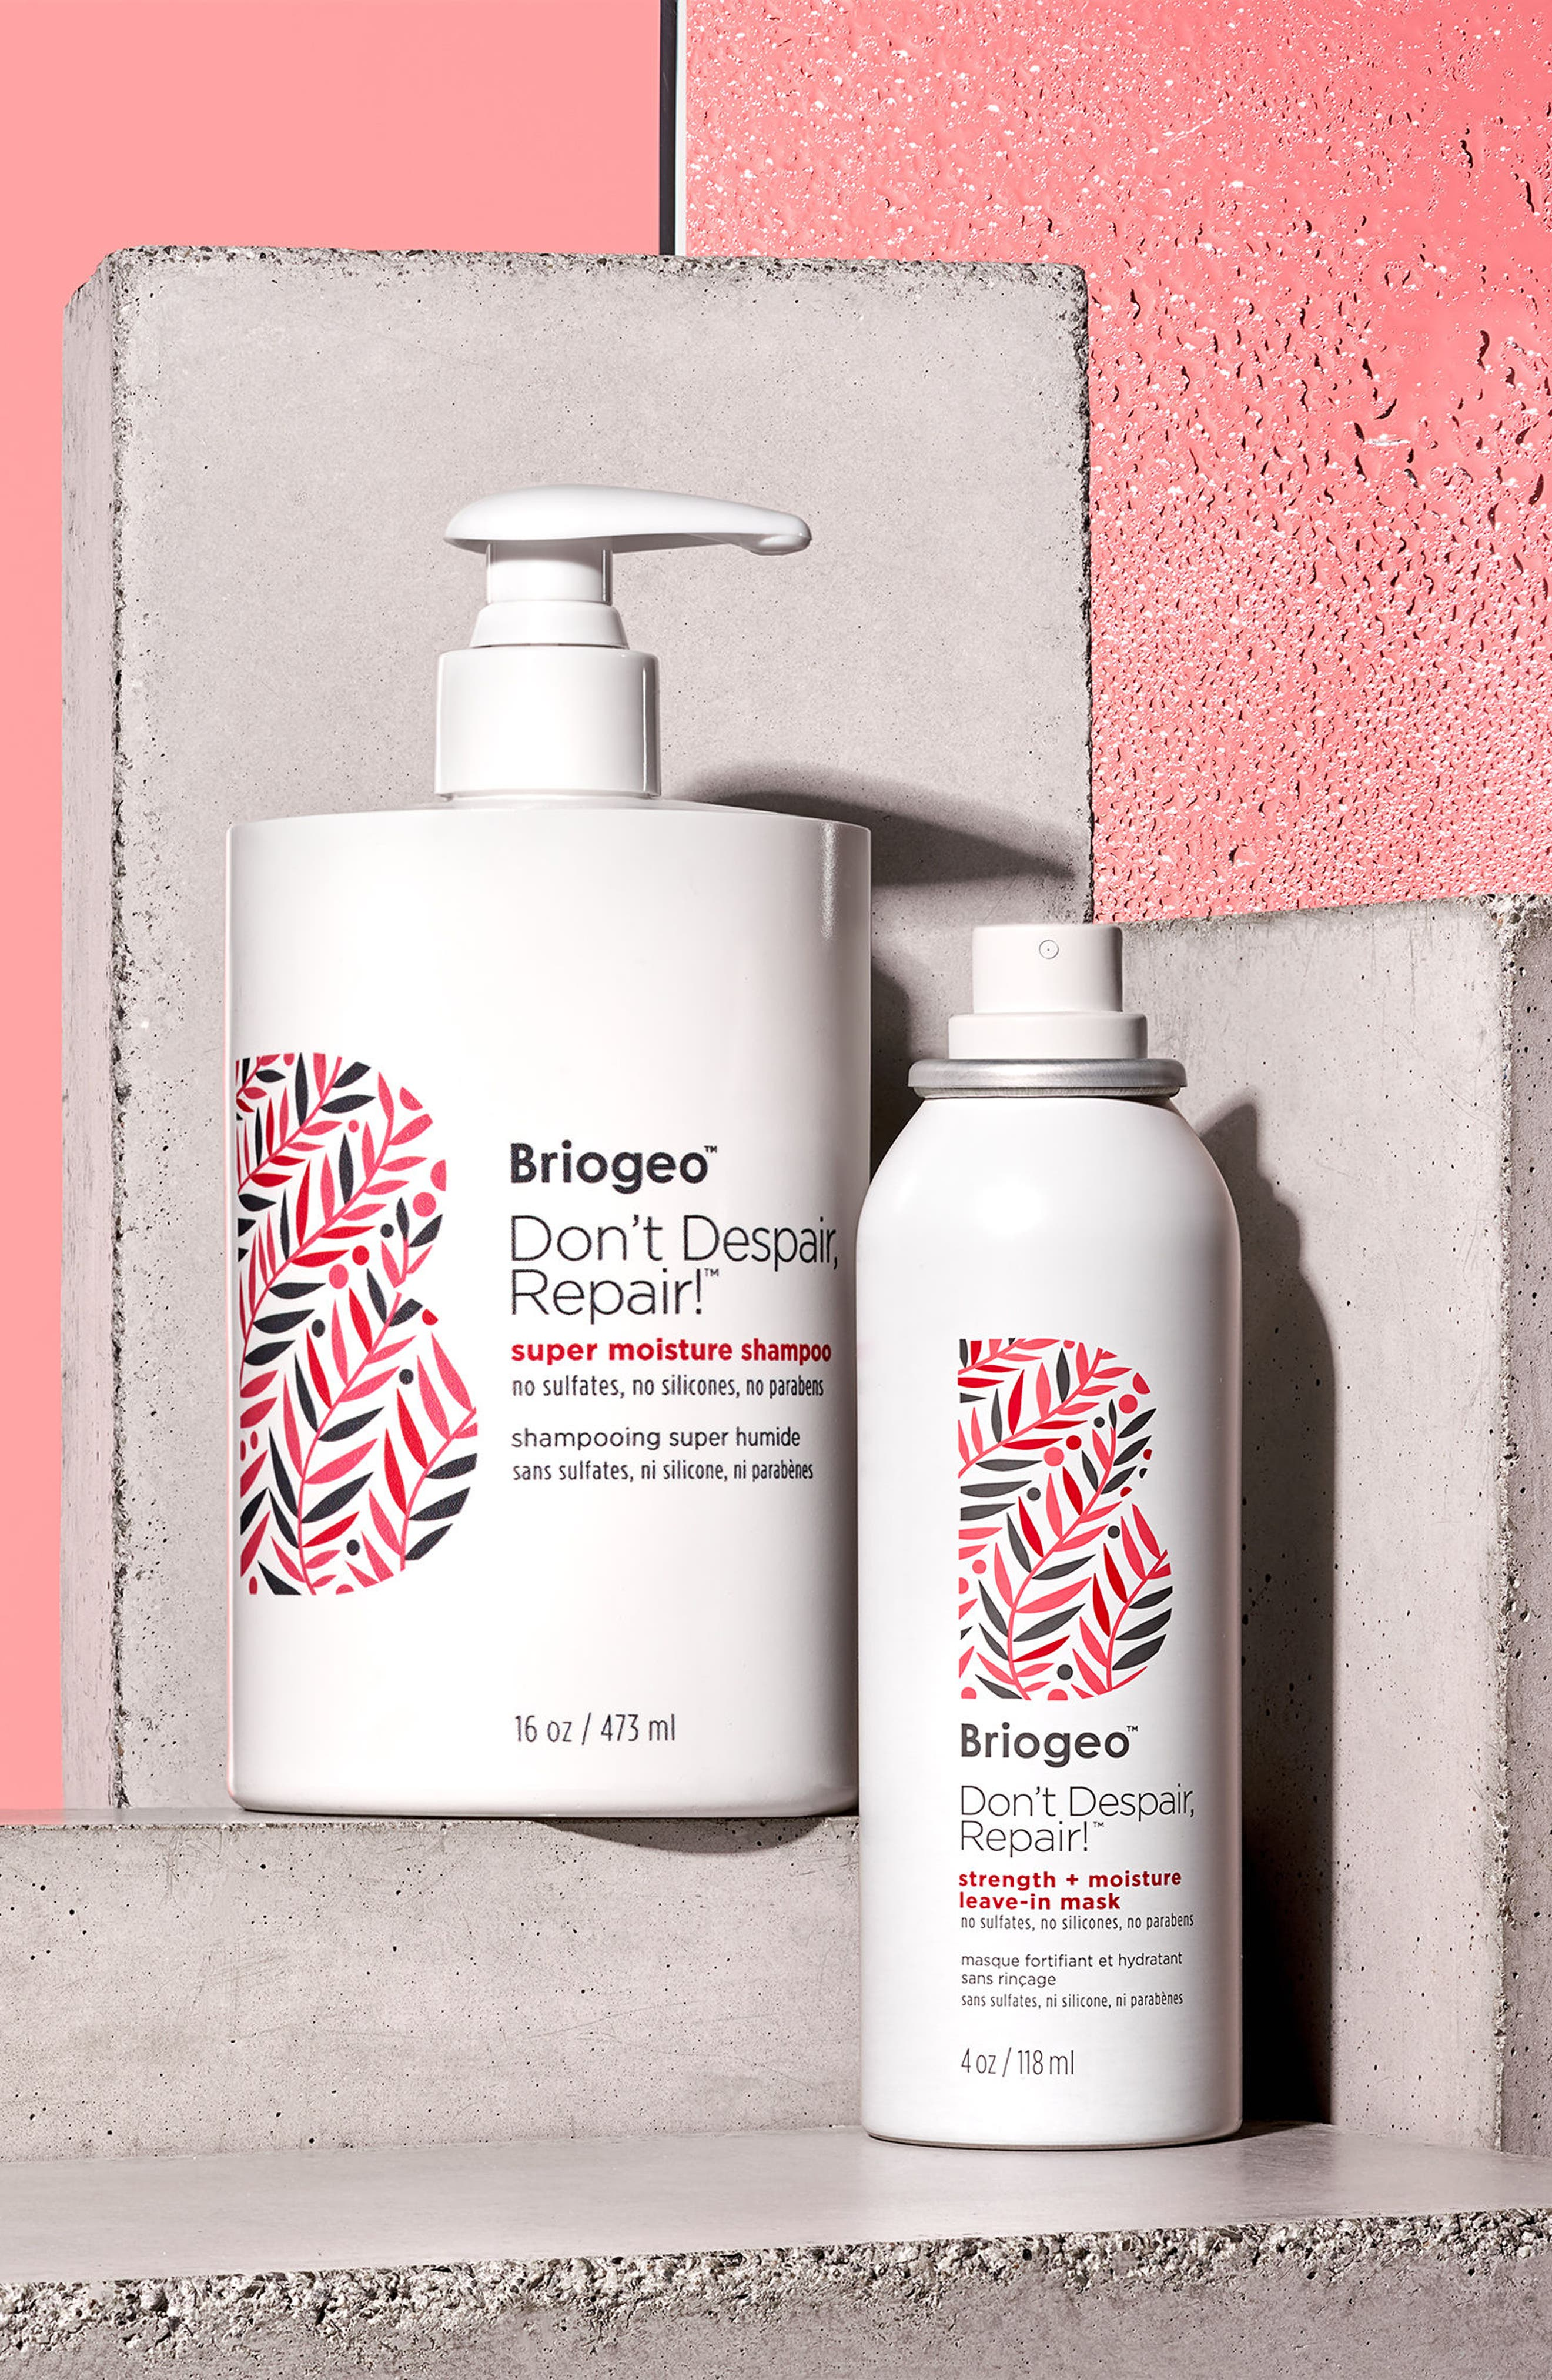 BRIOGEO, Don't Despair, Repair! Strength + Moisture Leave In Mask Spray, Alternate thumbnail 3, color, NO COLOR